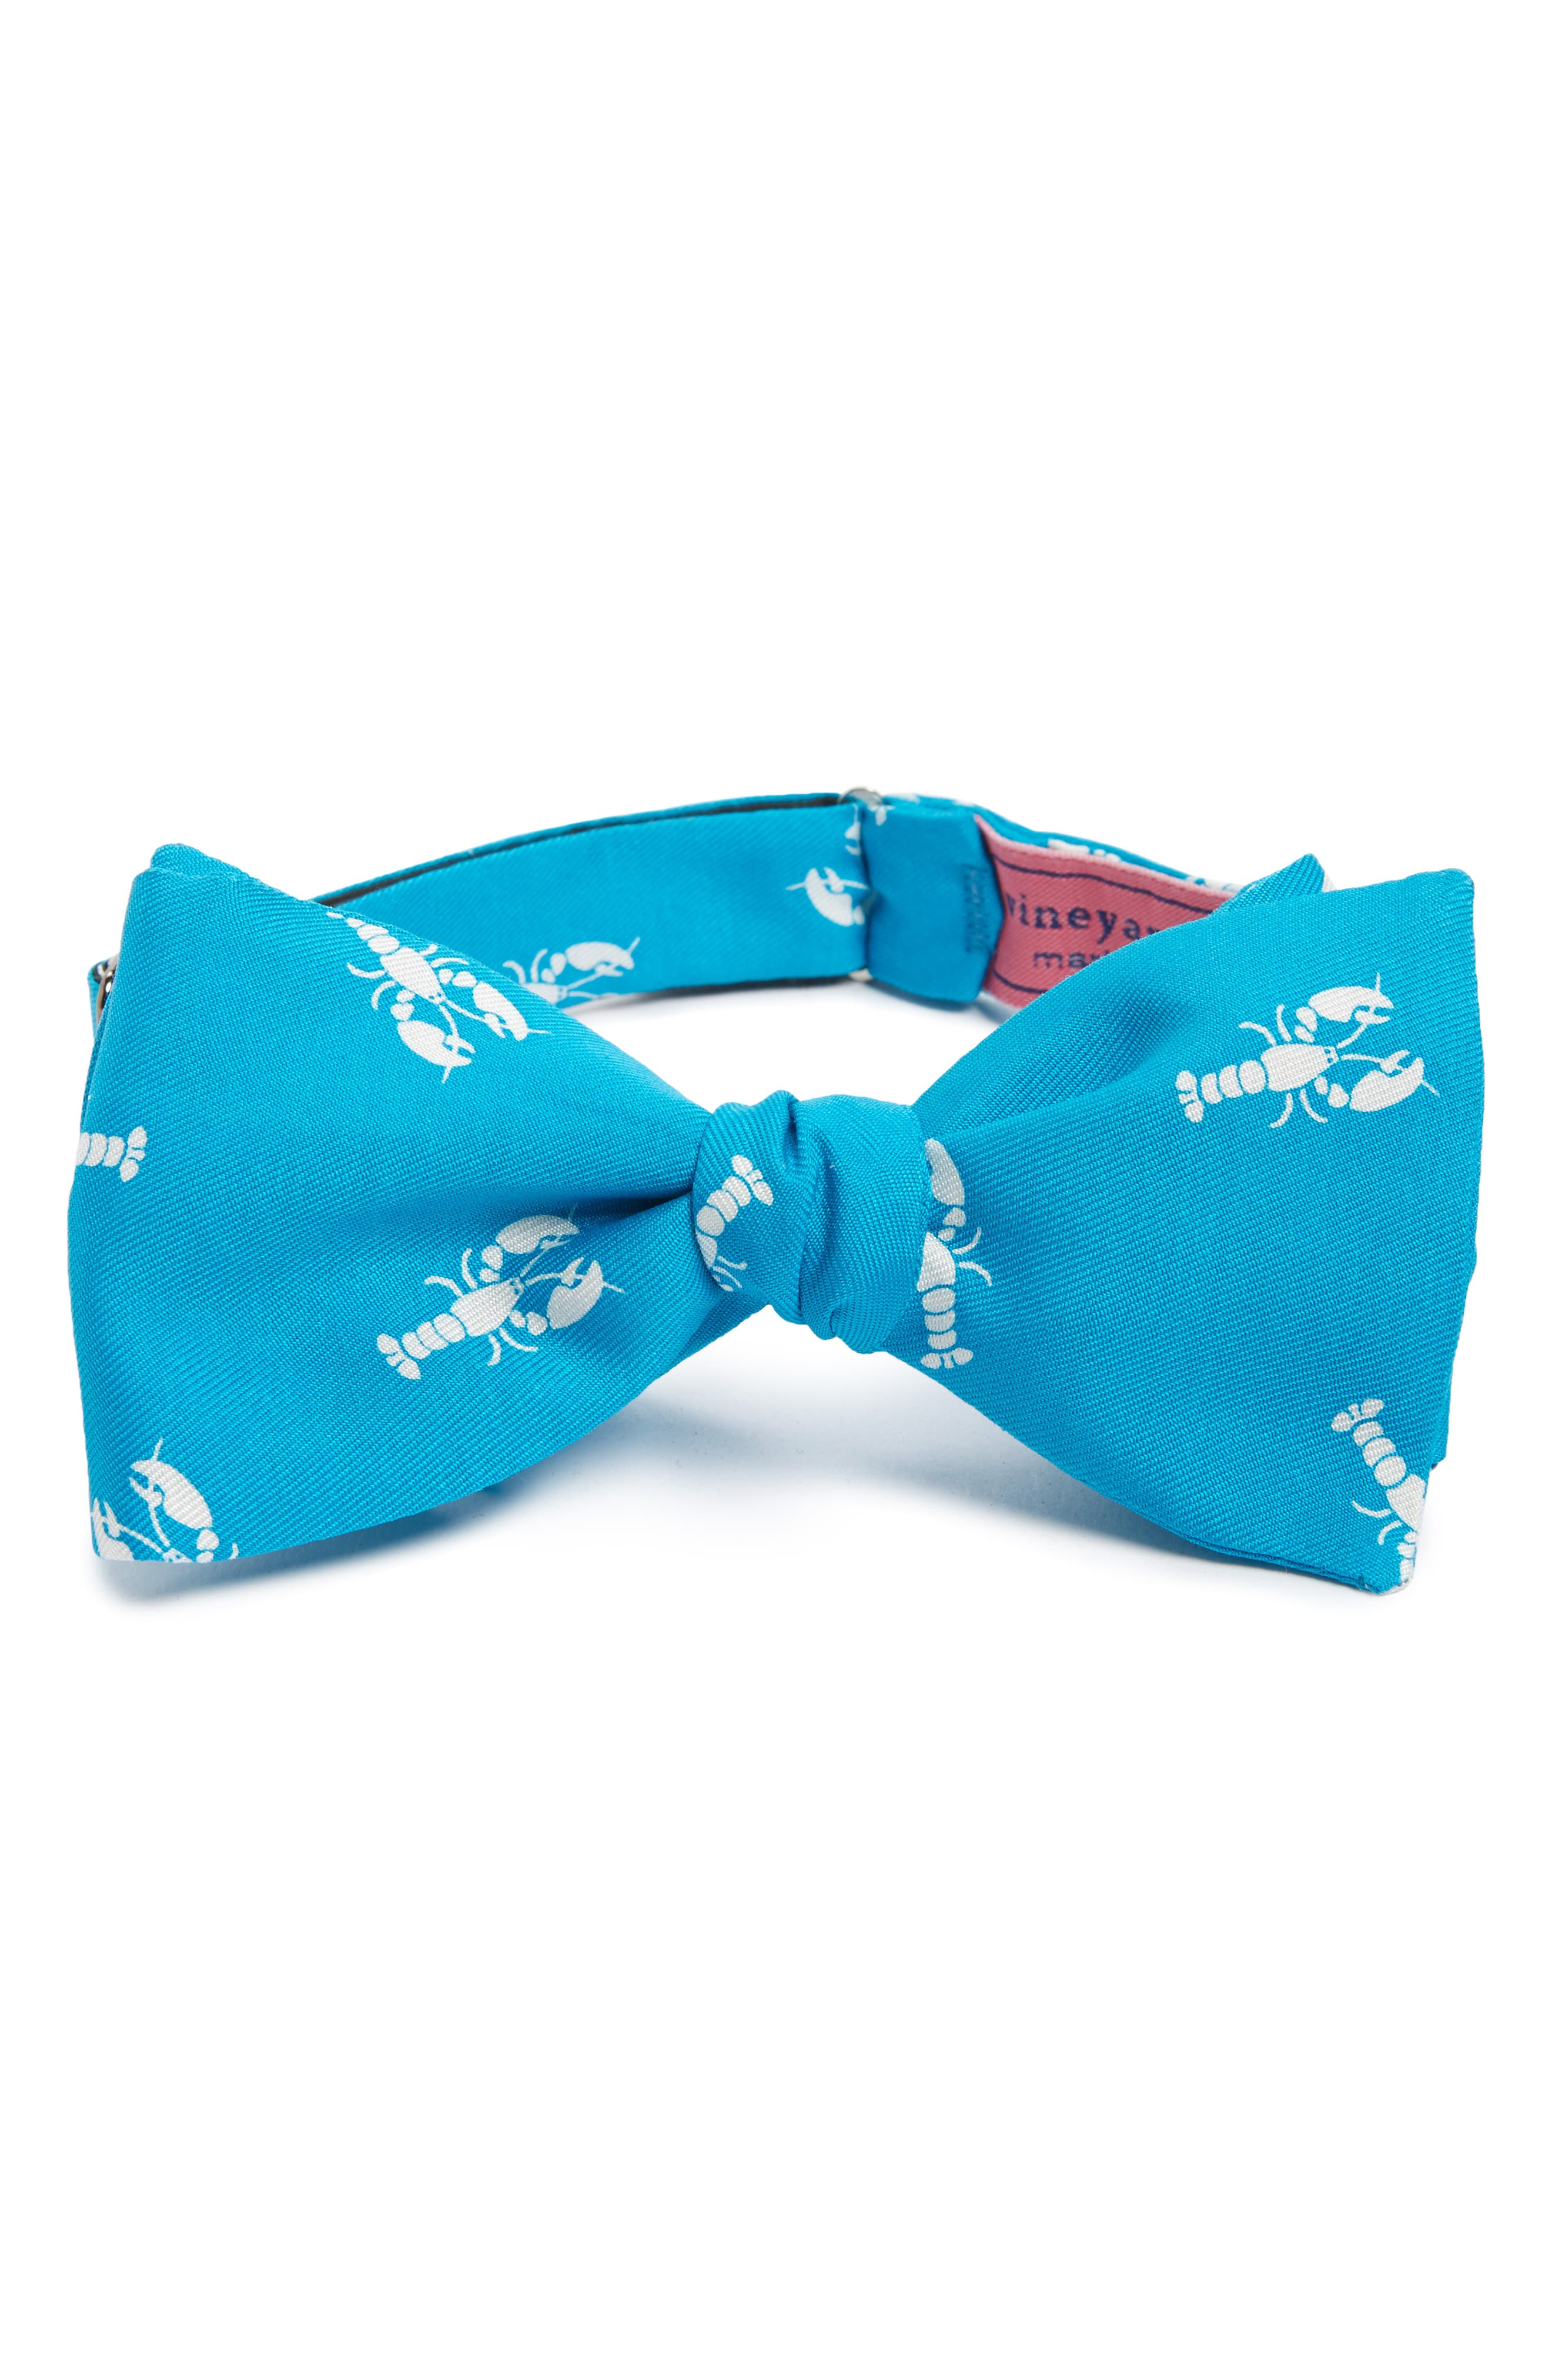 Lobster Bow Tie,                             Main thumbnail 1, color,                             441